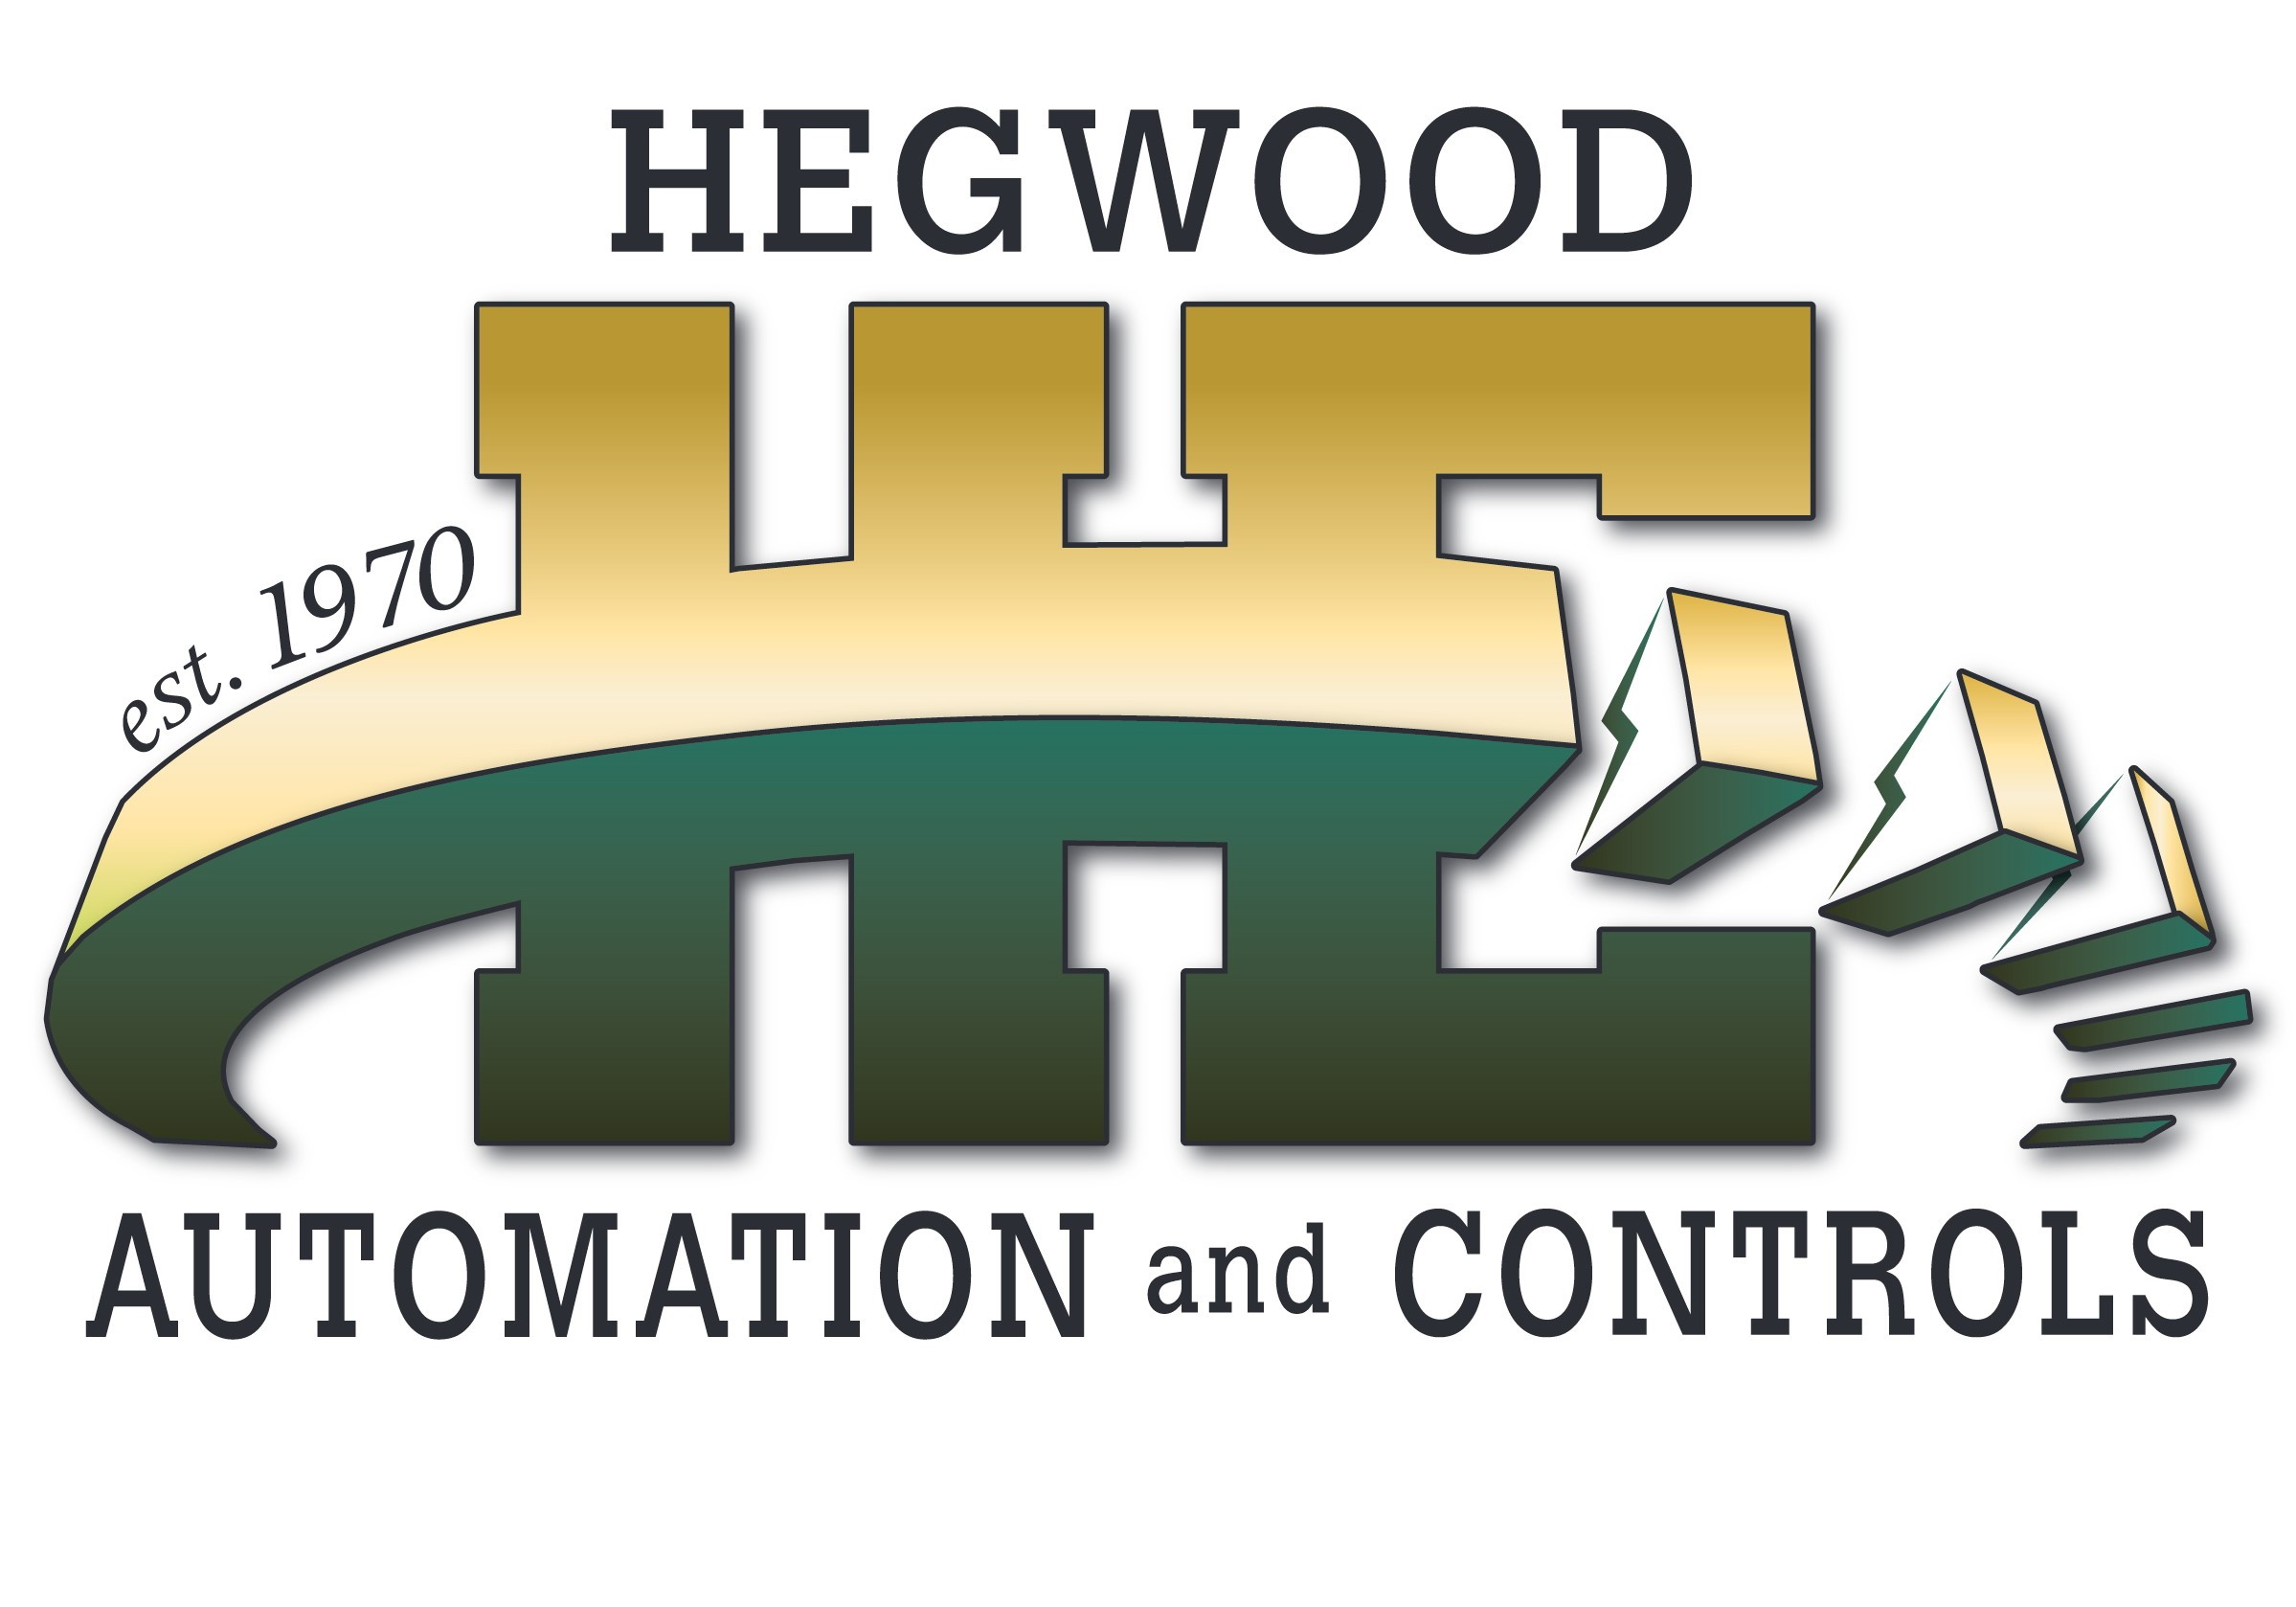 Hegwood Electric Service, Inc. in Doraville, GA. Industrial automation & controls.